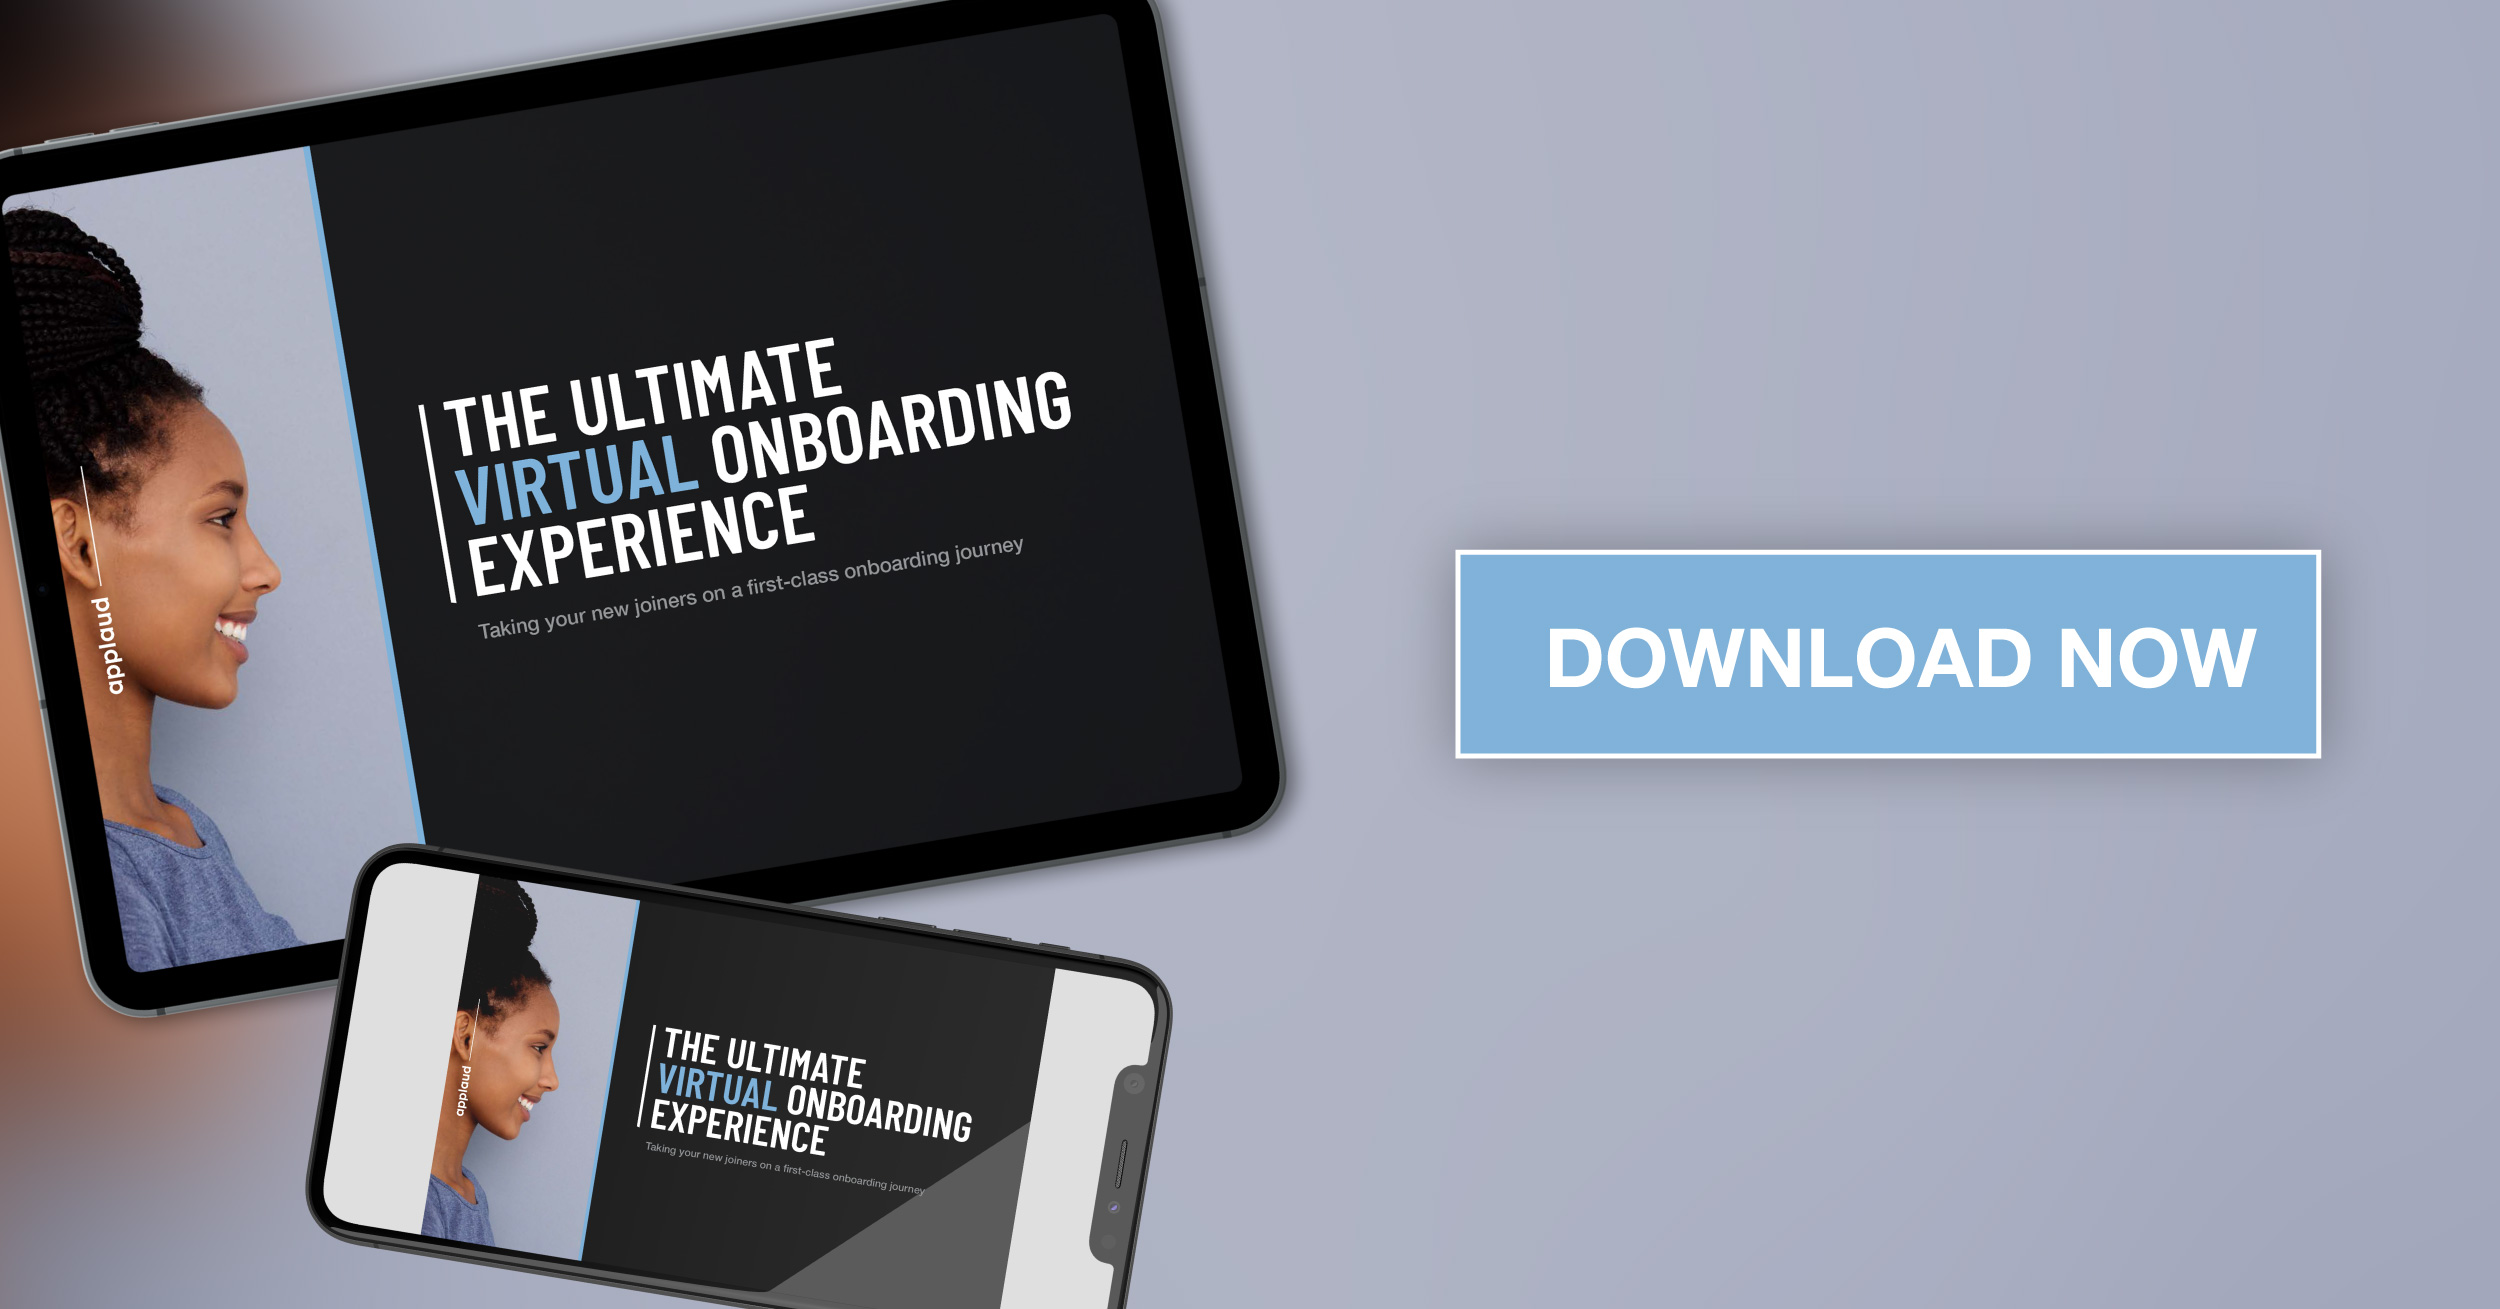 Applaud HR Guide to The Ultimate Virtual Onboarding Experience download graphic